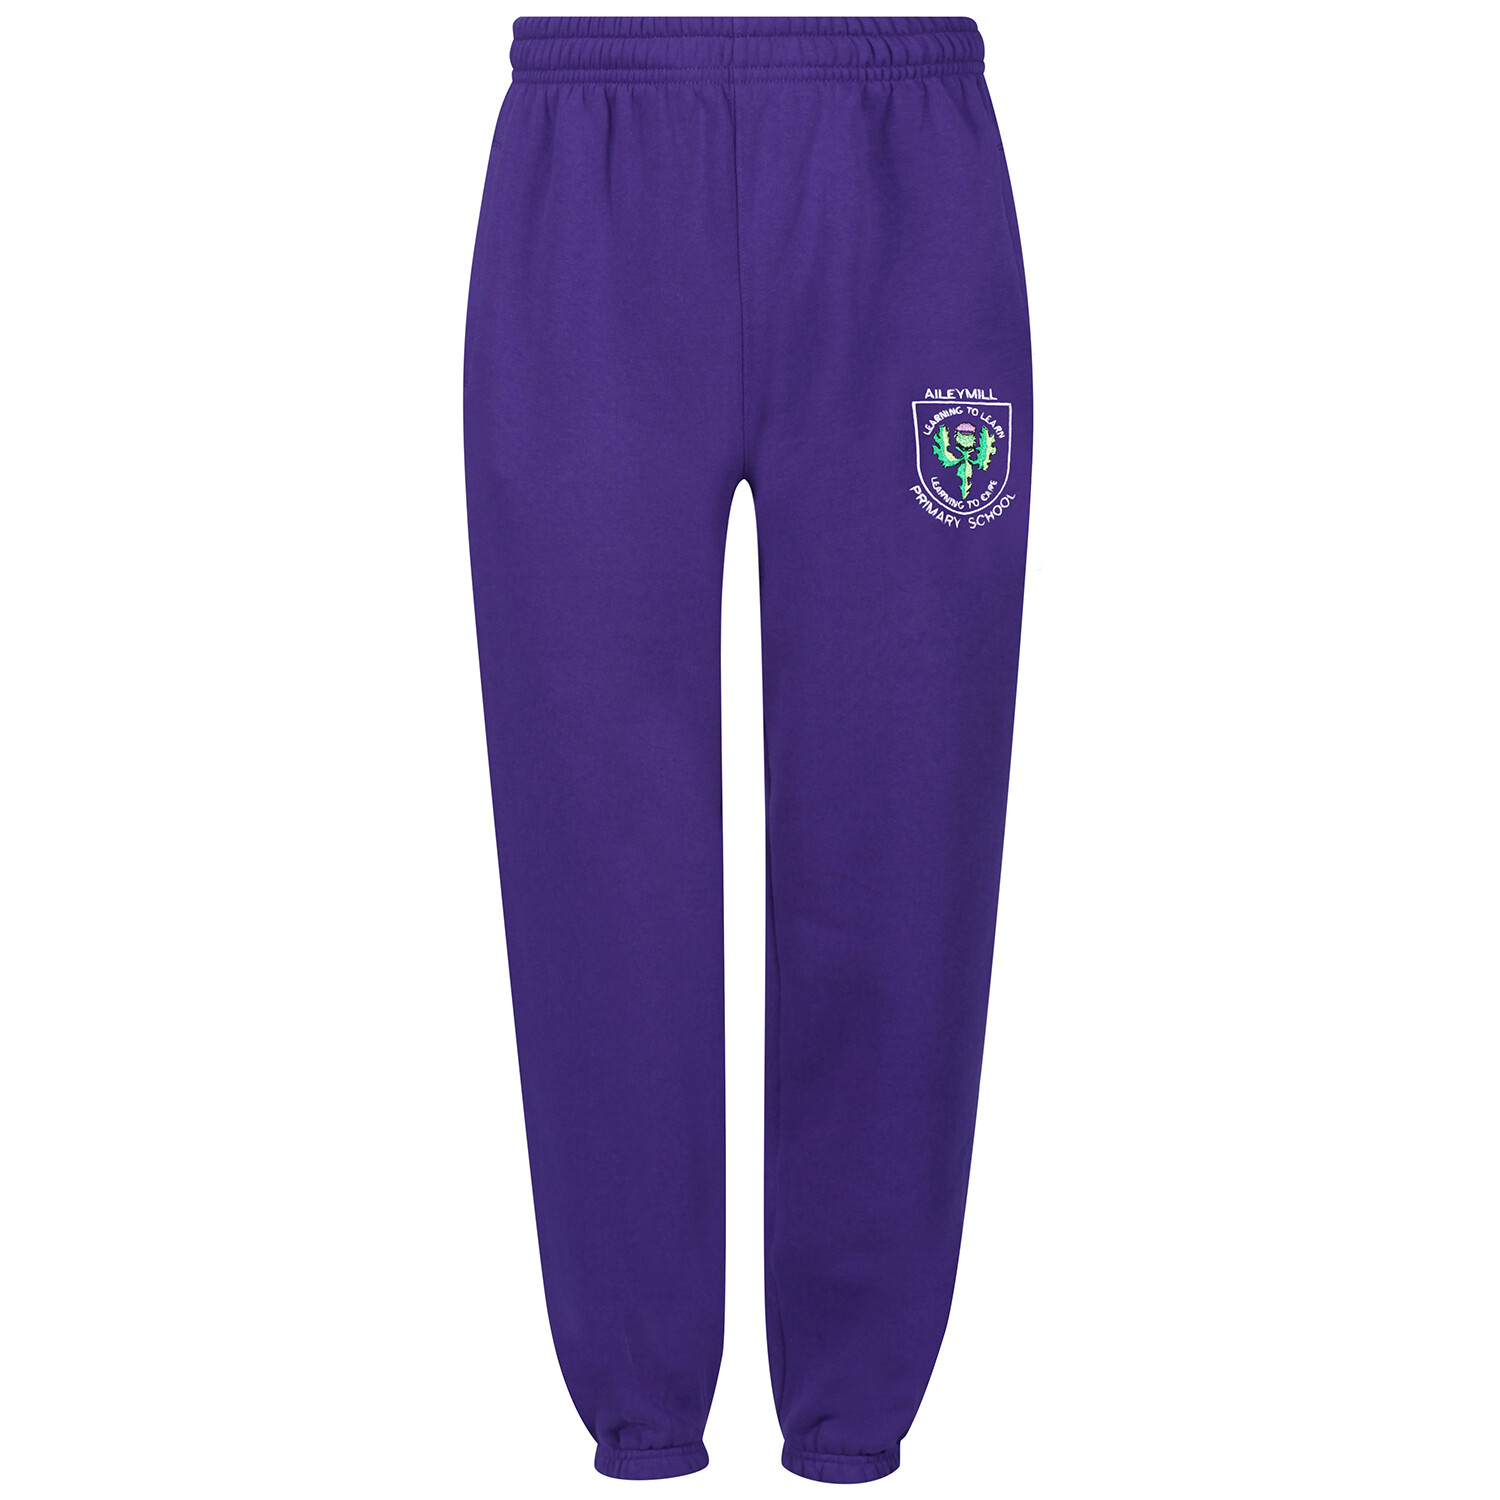 Aileymill Jog Pant for PE & Outdoor Activity (choice of colours)